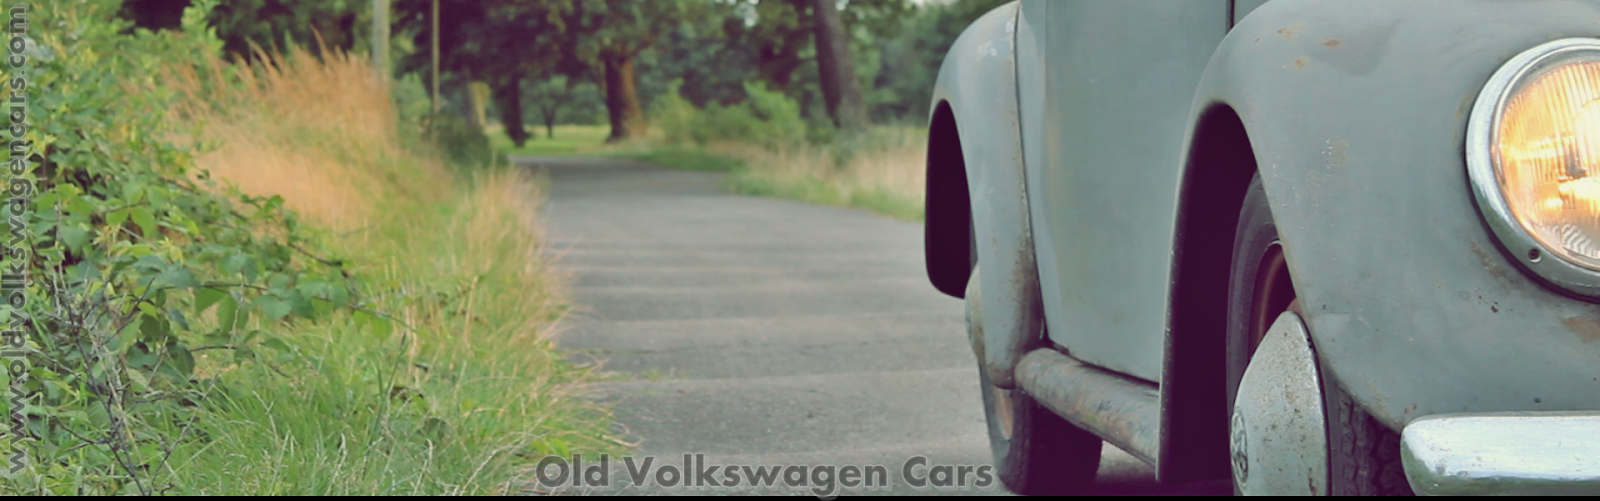 Old Volkswagen Cars